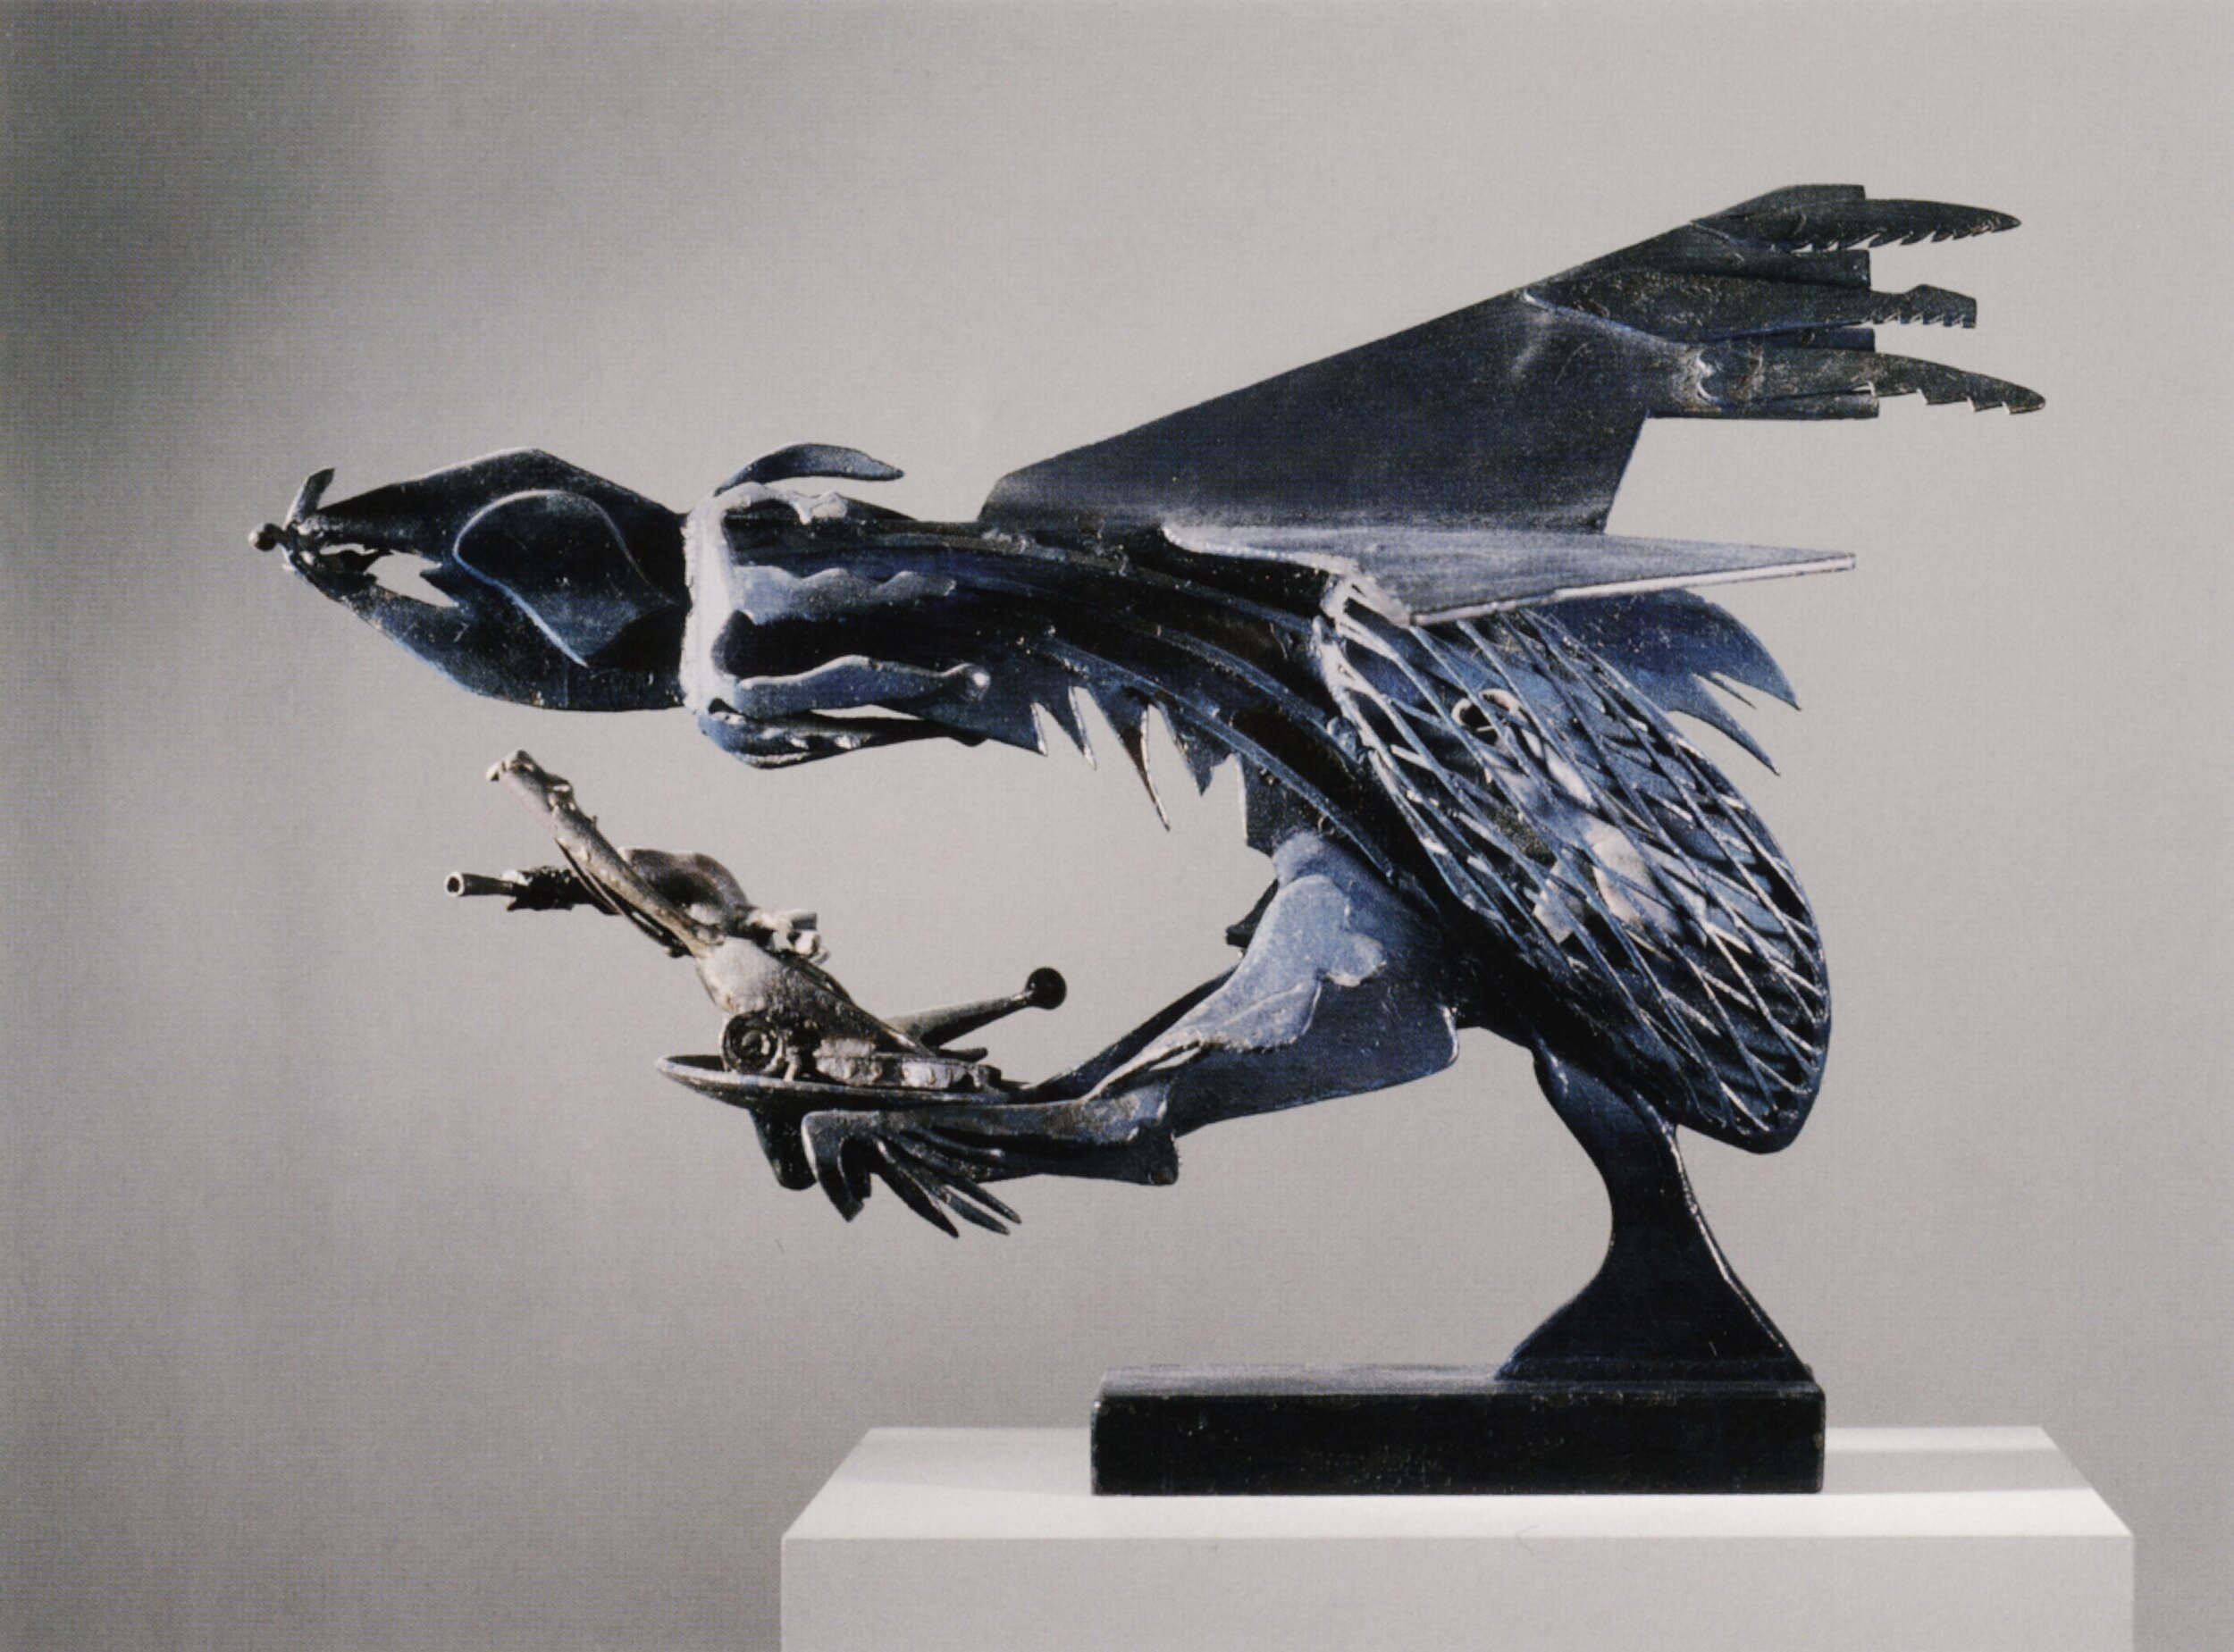 David Smith, False Peace Spectre, 1945. Painted steel and bronze, 12½ × 27¼ × 10¾ in. (31.8 × 69.2 × 27.3 cm). Private collection.